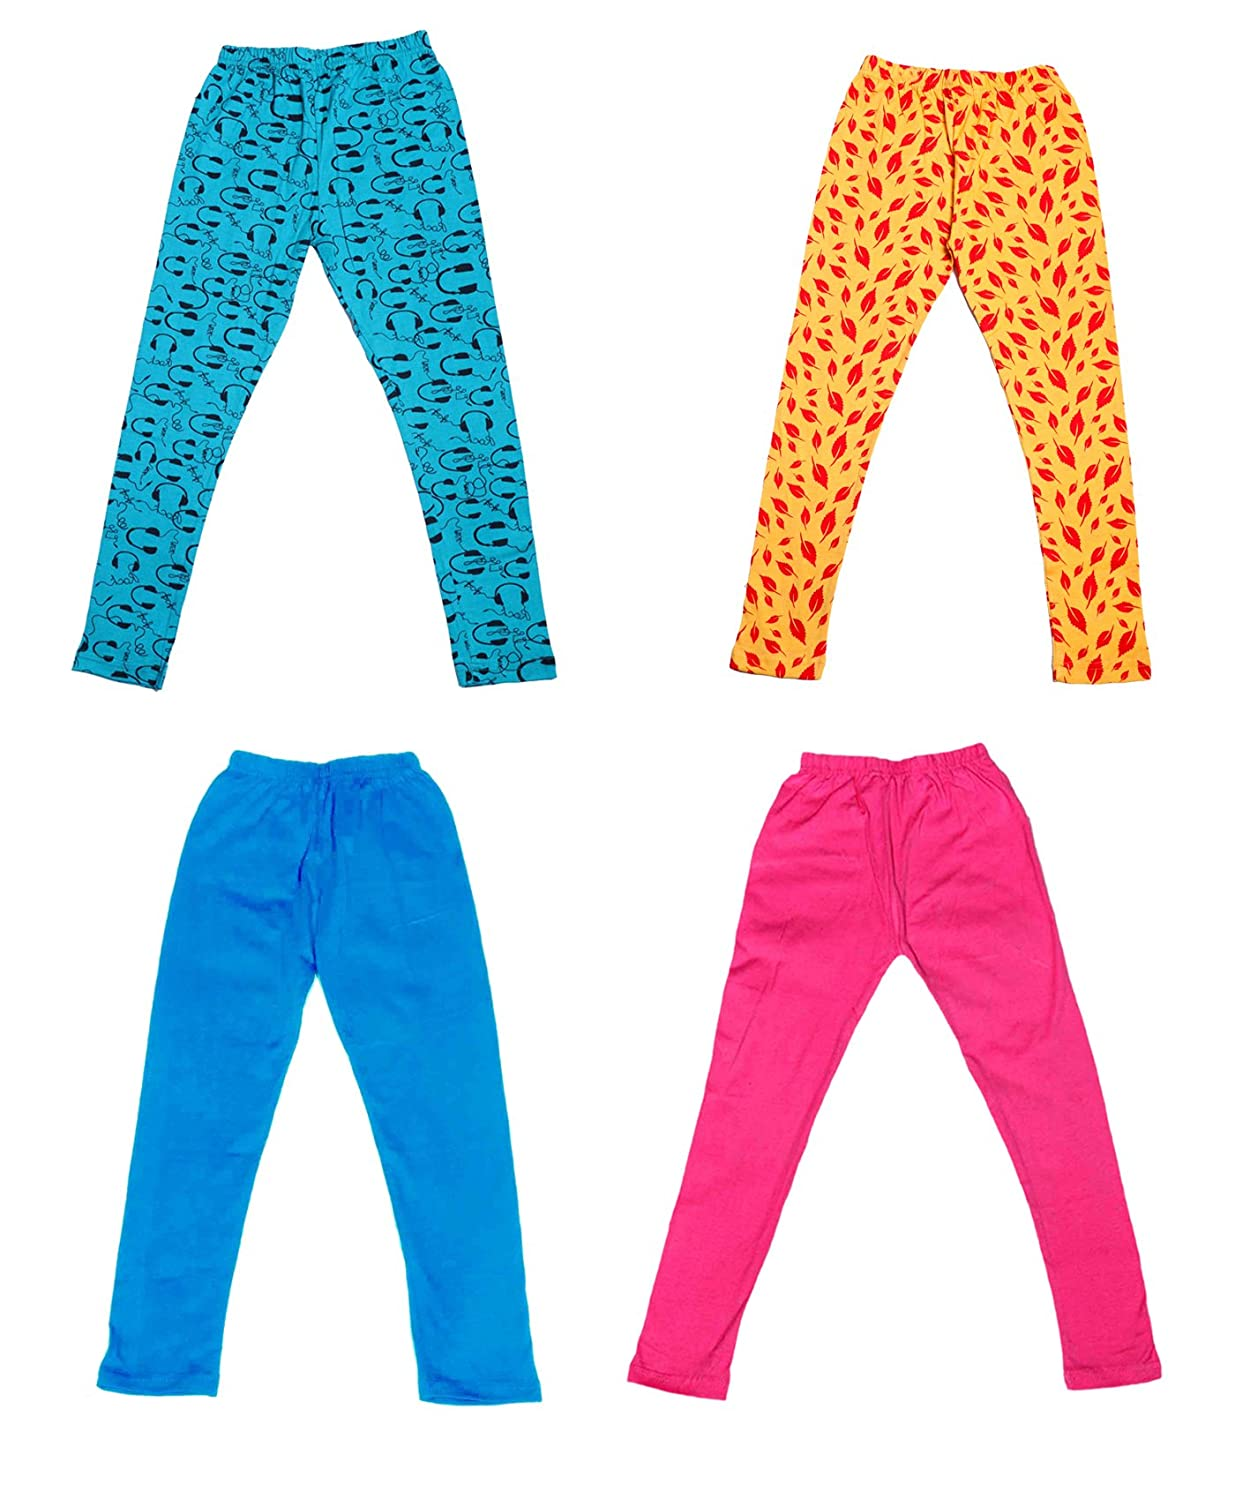 and 2 Cotton Printed Legging Pants /_Multicolor/_Size-3-5 Years/_71411121718-IW-P4-24 Indistar Girls 2 Cotton Solid Legging Pants Pack Of 4